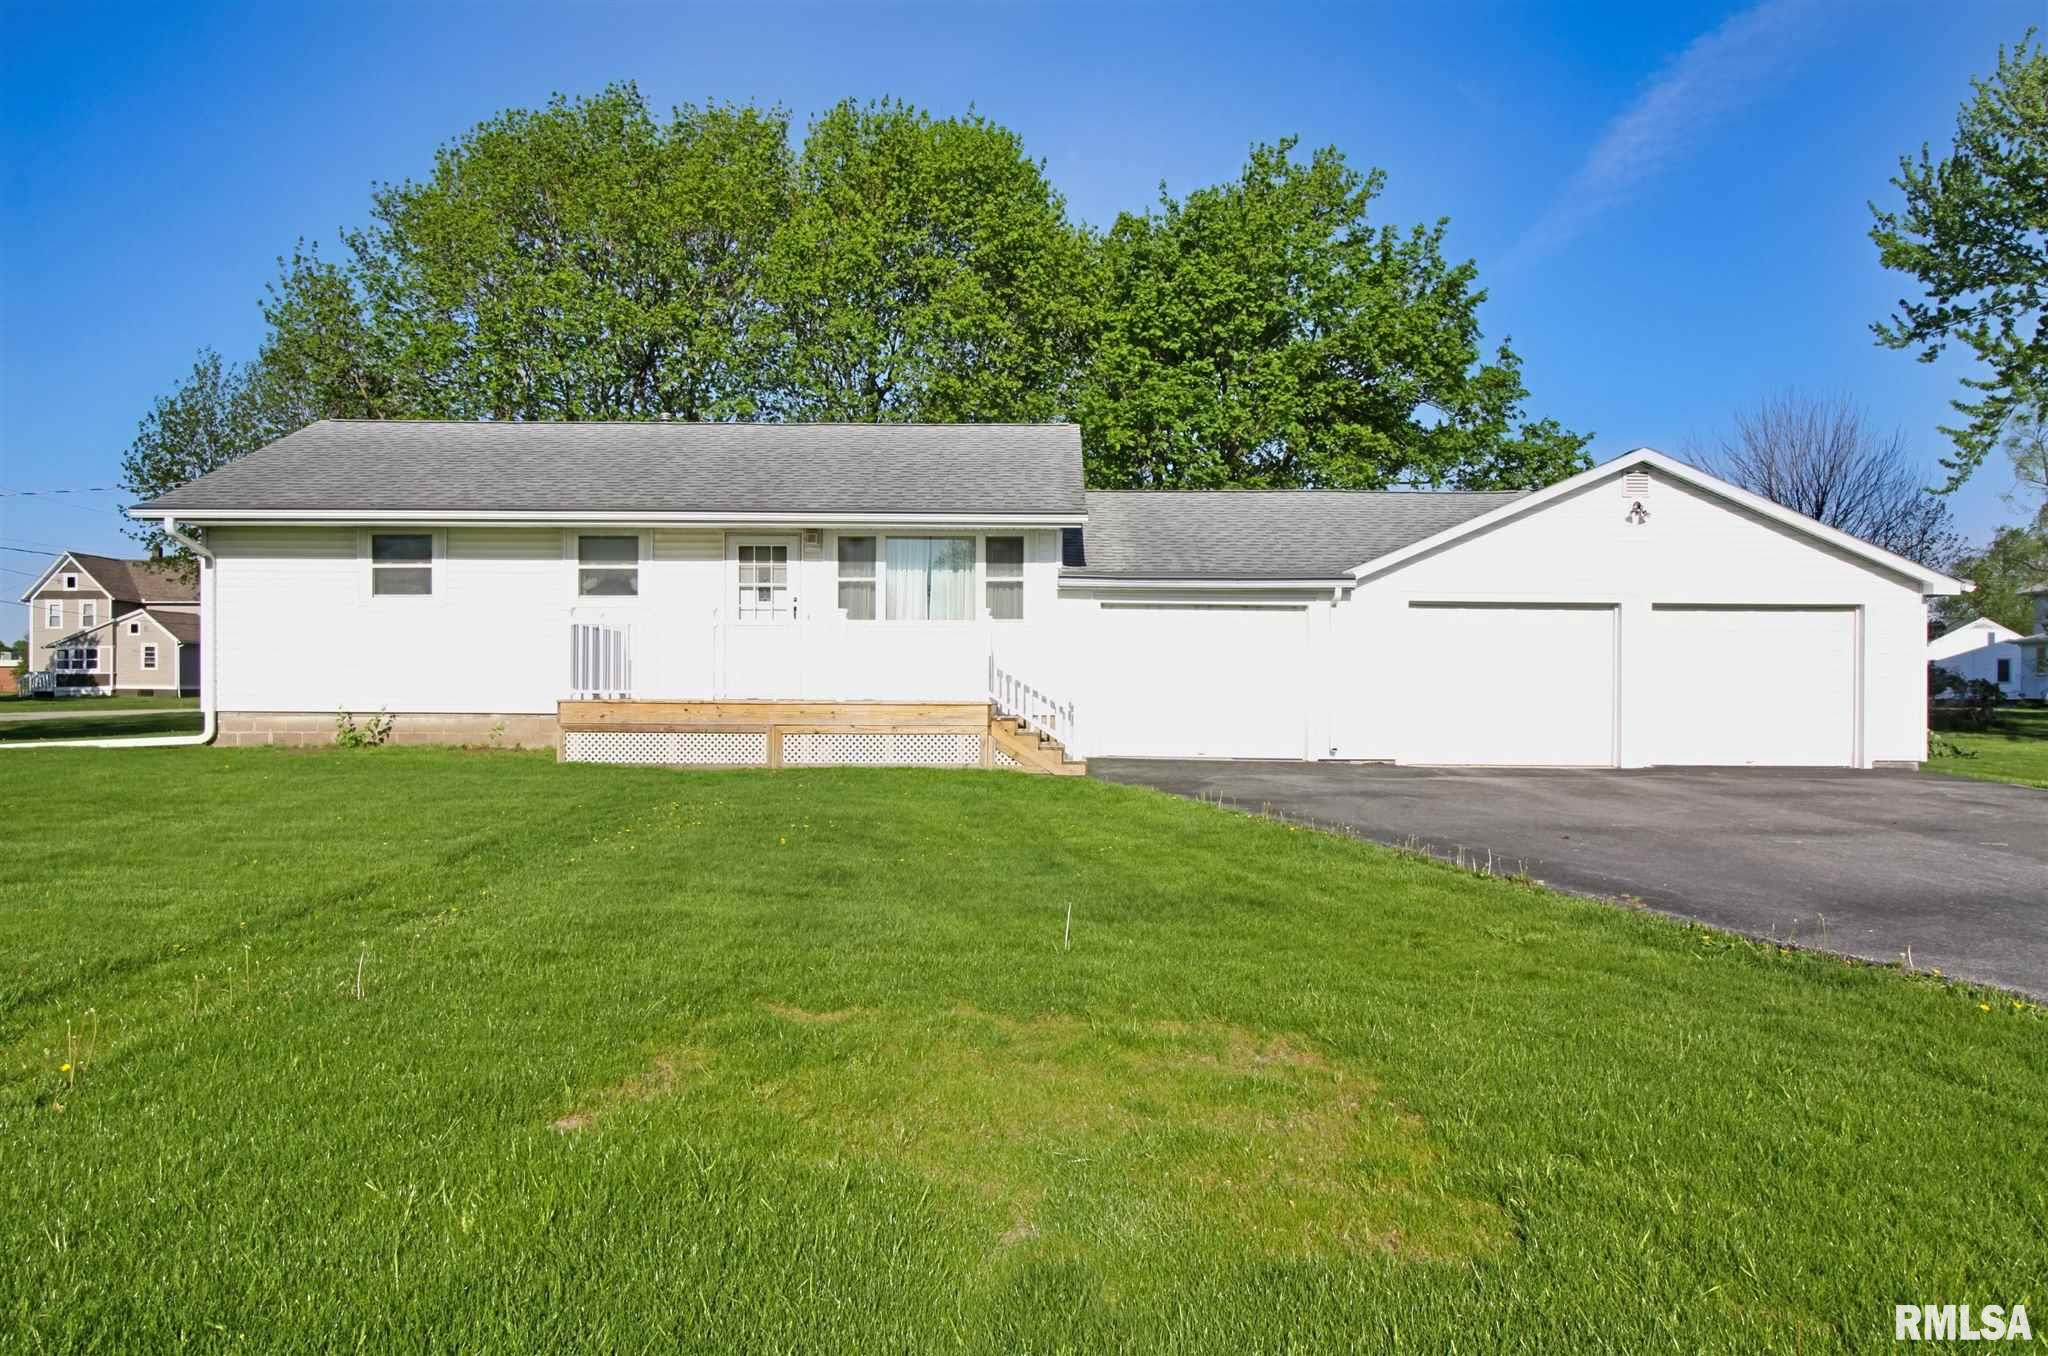 1312 11TH Property Photo - Orion, IL real estate listing